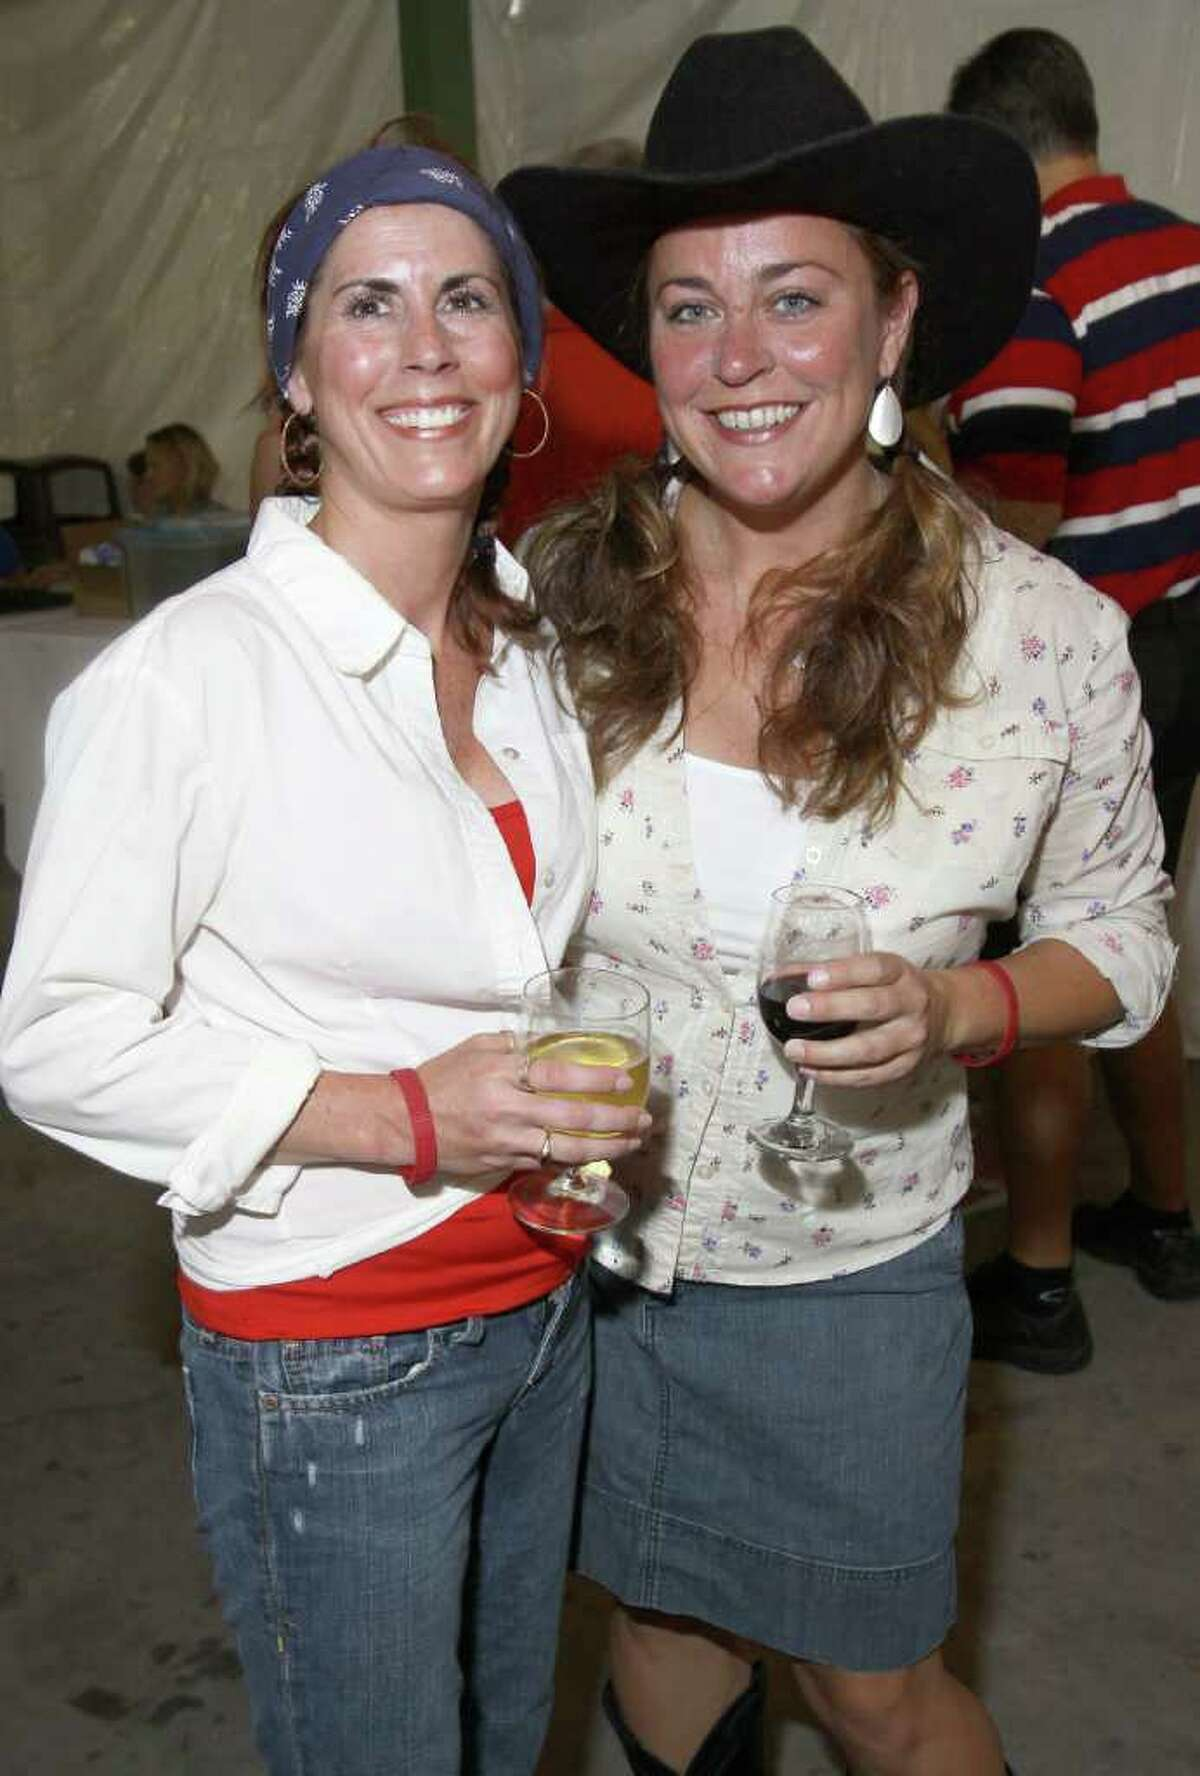 Lake George, NY - July 1, 2011 - (Photo by Joe Putrock/Special to the Times Union) - Samantha Corhouse(left) and Heather O'Neill(right) during the Double H Ranch 20th Anniversary Gala.